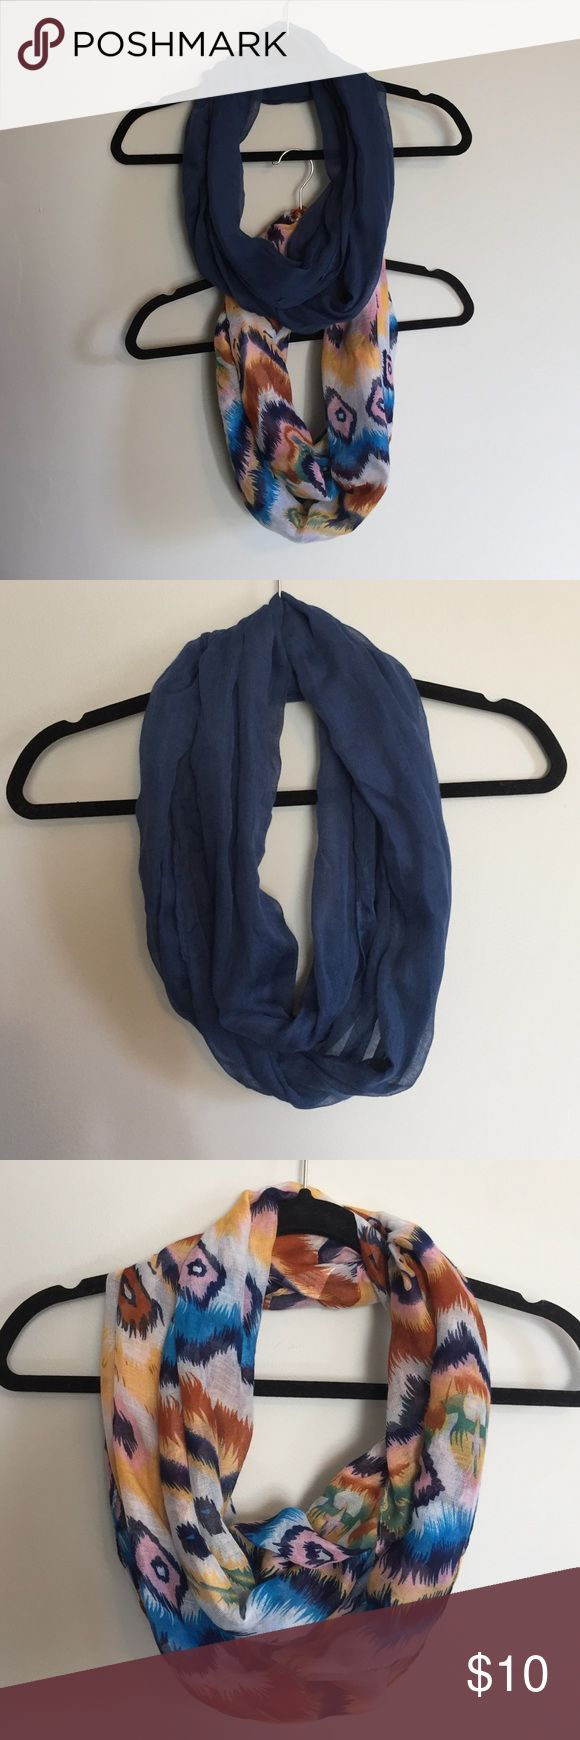 Infinity scarf bundle Two pack infinity scarves. Dark blue and multi color. One size. Accessories Scarves & Wraps